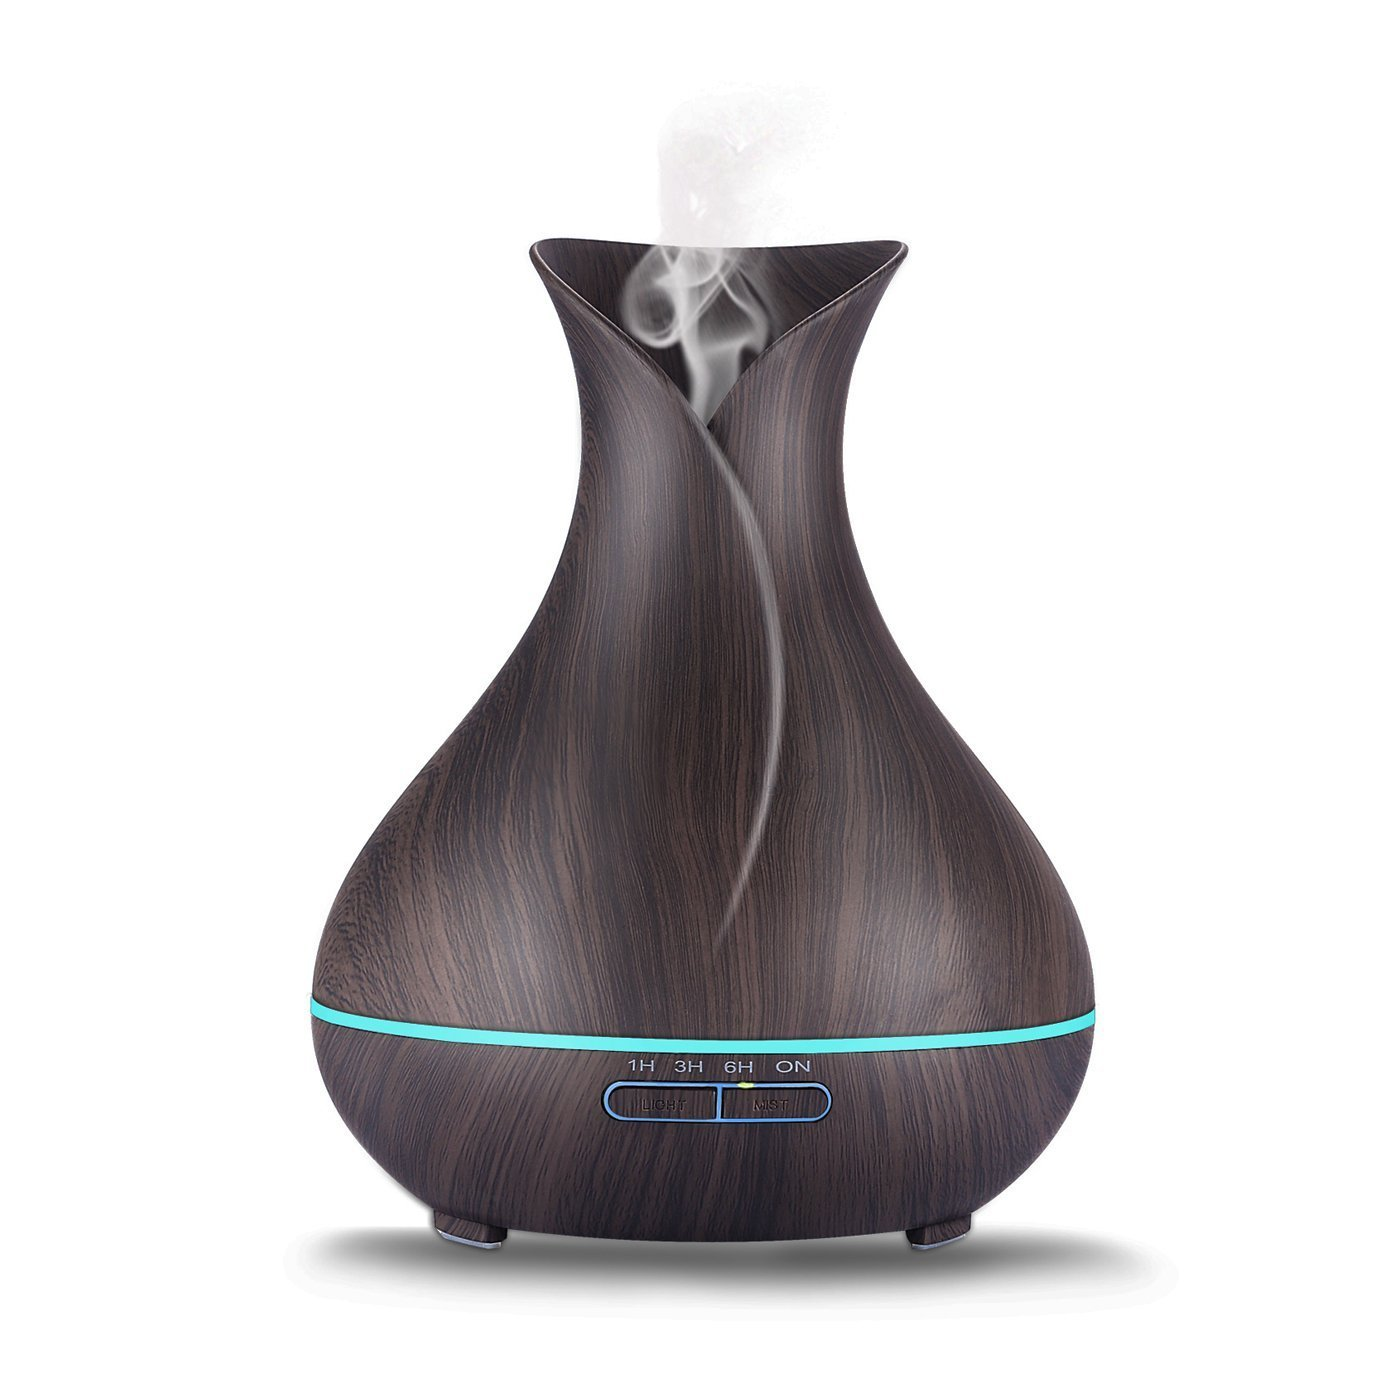 Wood Grain Humidifier & Essential Oil Diffuser (400ml)